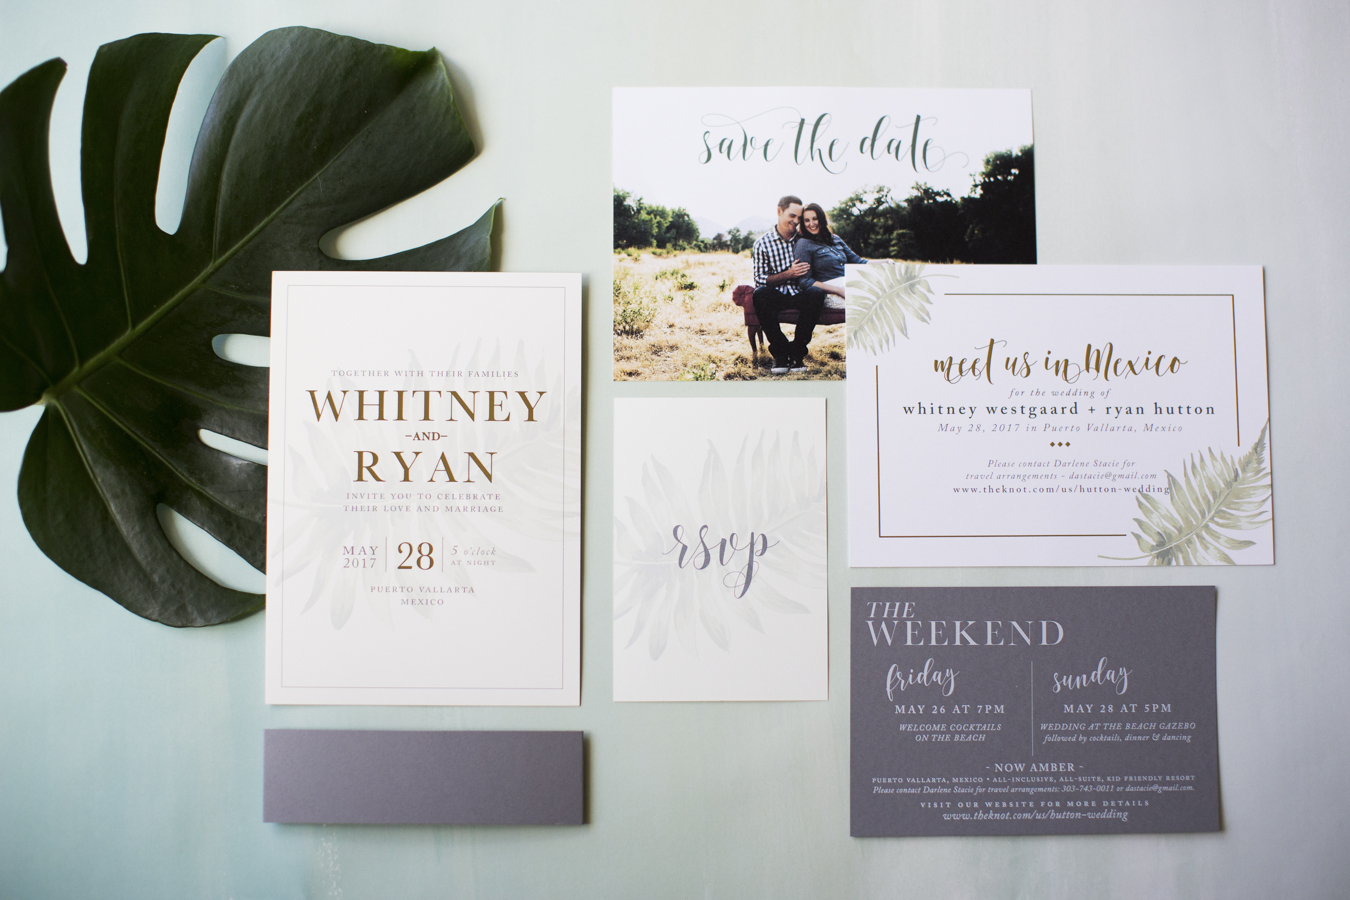 Modern Destination Wedding Invitation | Stationery Design Blog